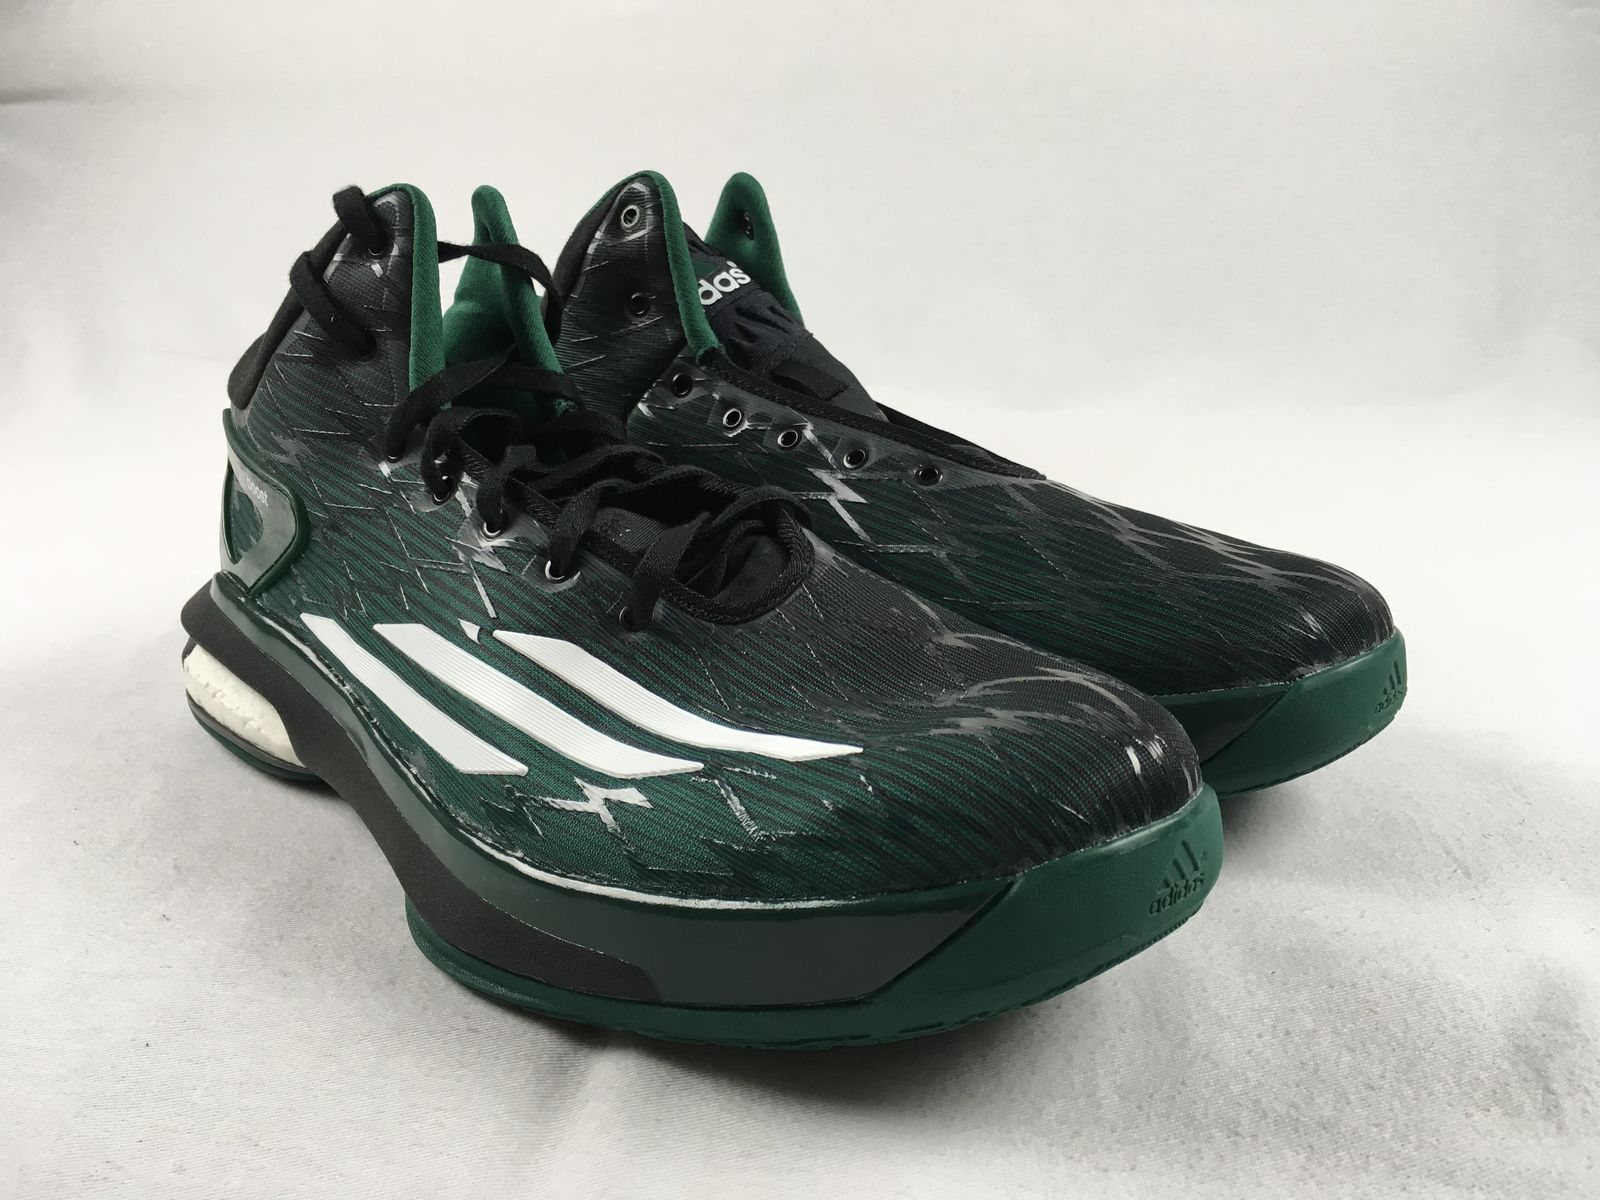 NEW adidas Crazylight Boost Green Basketball Shoes (Men's